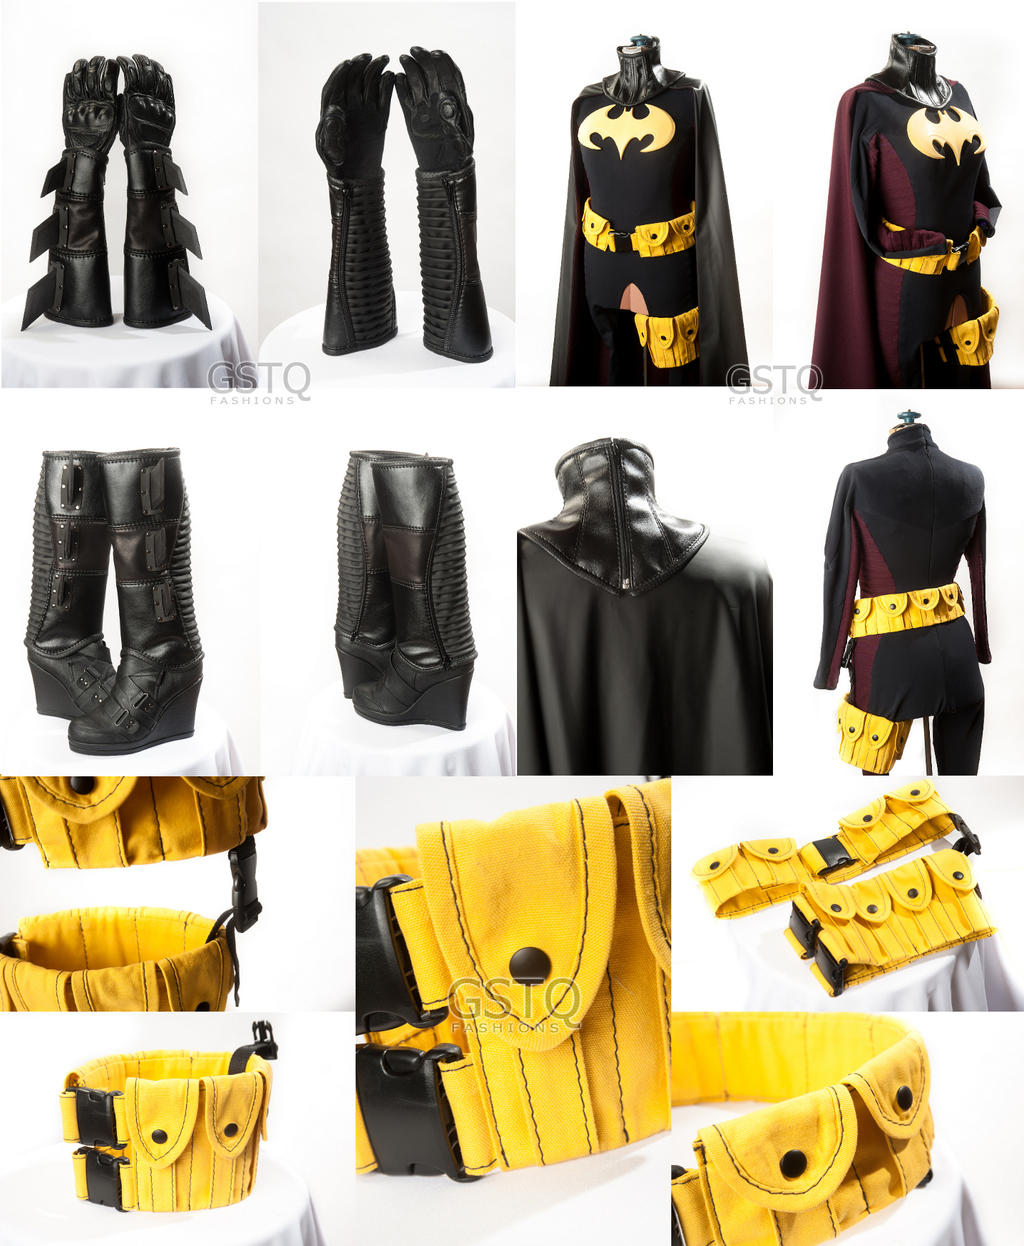 Stephanie Brown Batgirl Costume by gstqfashions Stephanie Brown Batgirl Costume by gstqfashions & Stephanie Brown Batgirl Costume by gstqfashions on DeviantArt